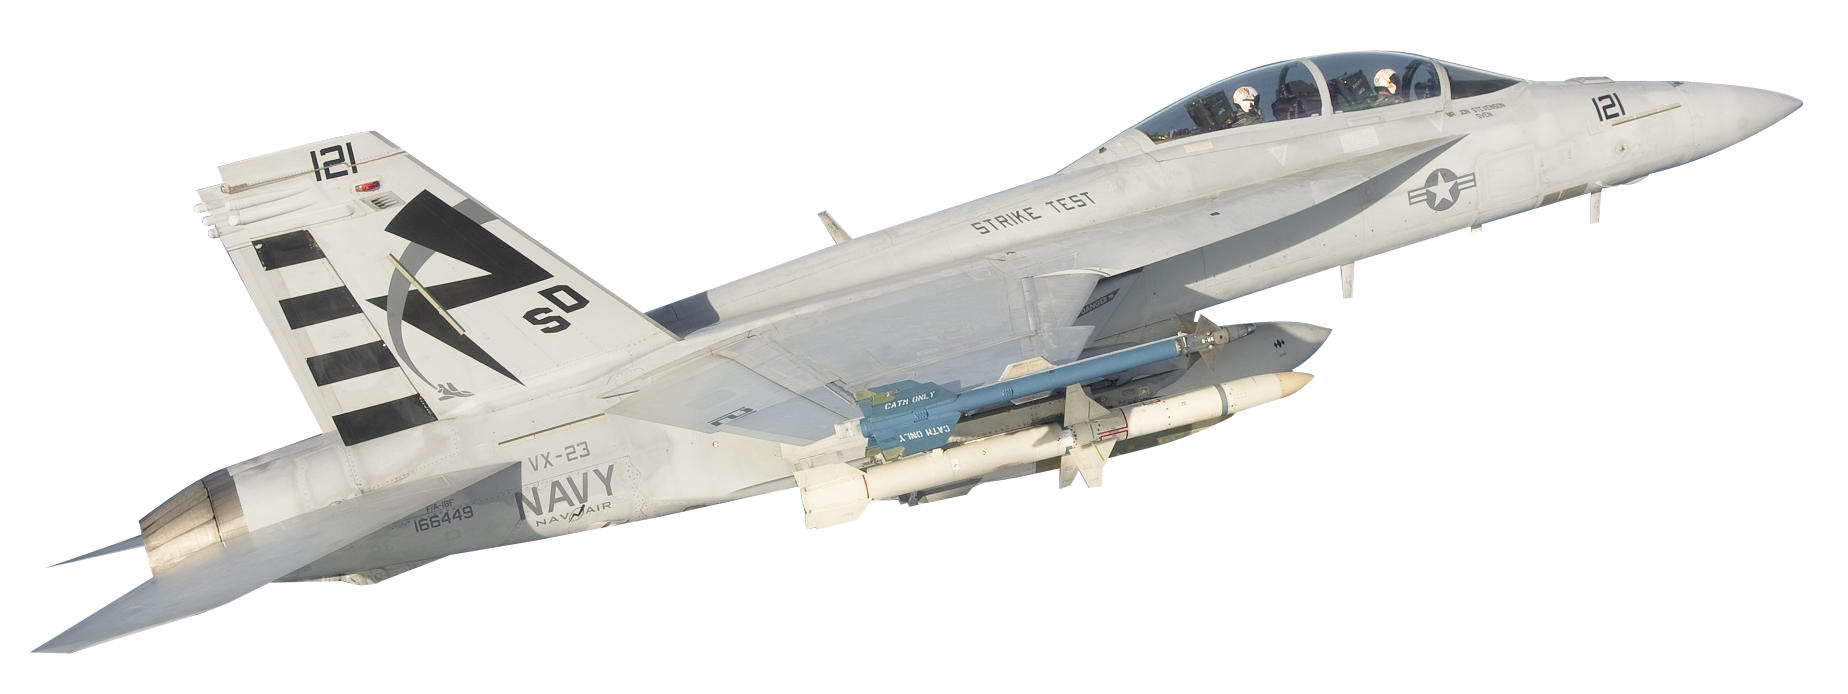 Military Jet PNG Transparent Image - Plane PNG